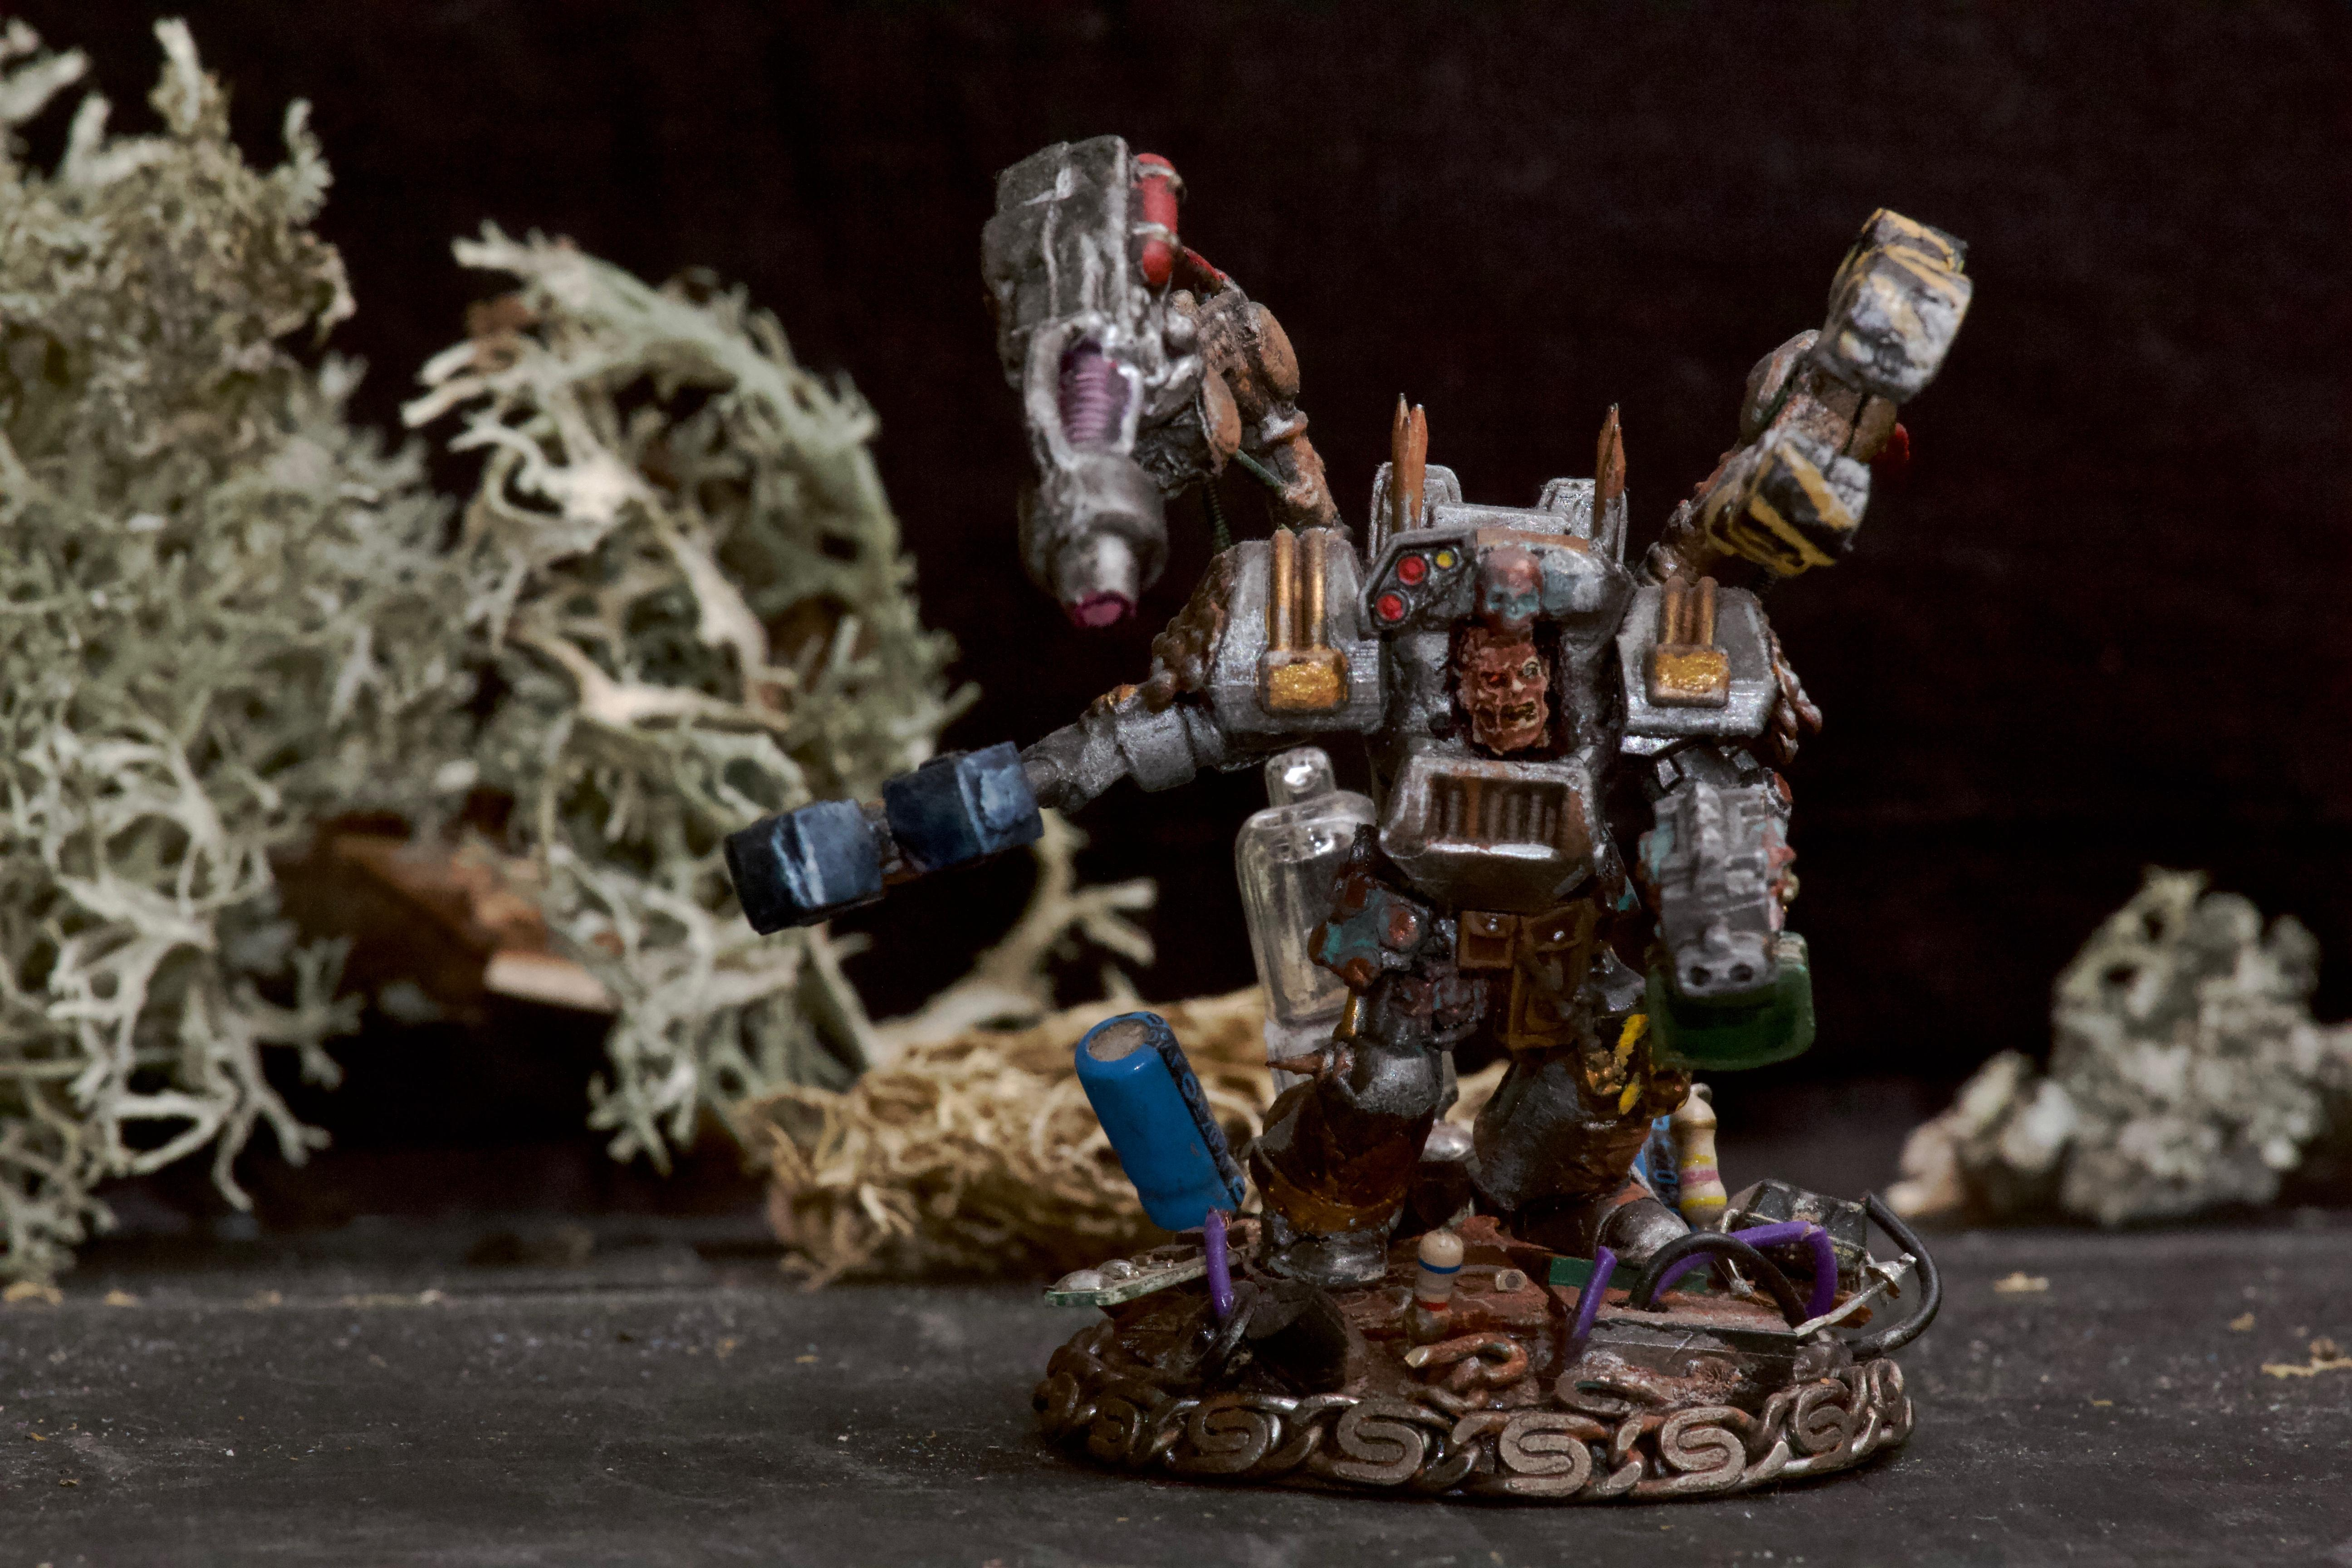 Awesome Photos, By Andrey Mishuta, Chaos, Chaos Space Marines, Conversion, Hazard Stripe, Heretic Astartes, Iron Warriors, Kitbash, M.a.k., Power Fist, Scratch Build, Servo Arm, Stormbolter, Terminator Armor, Thunder Hammer, Warhammer 40,000, Warsmith